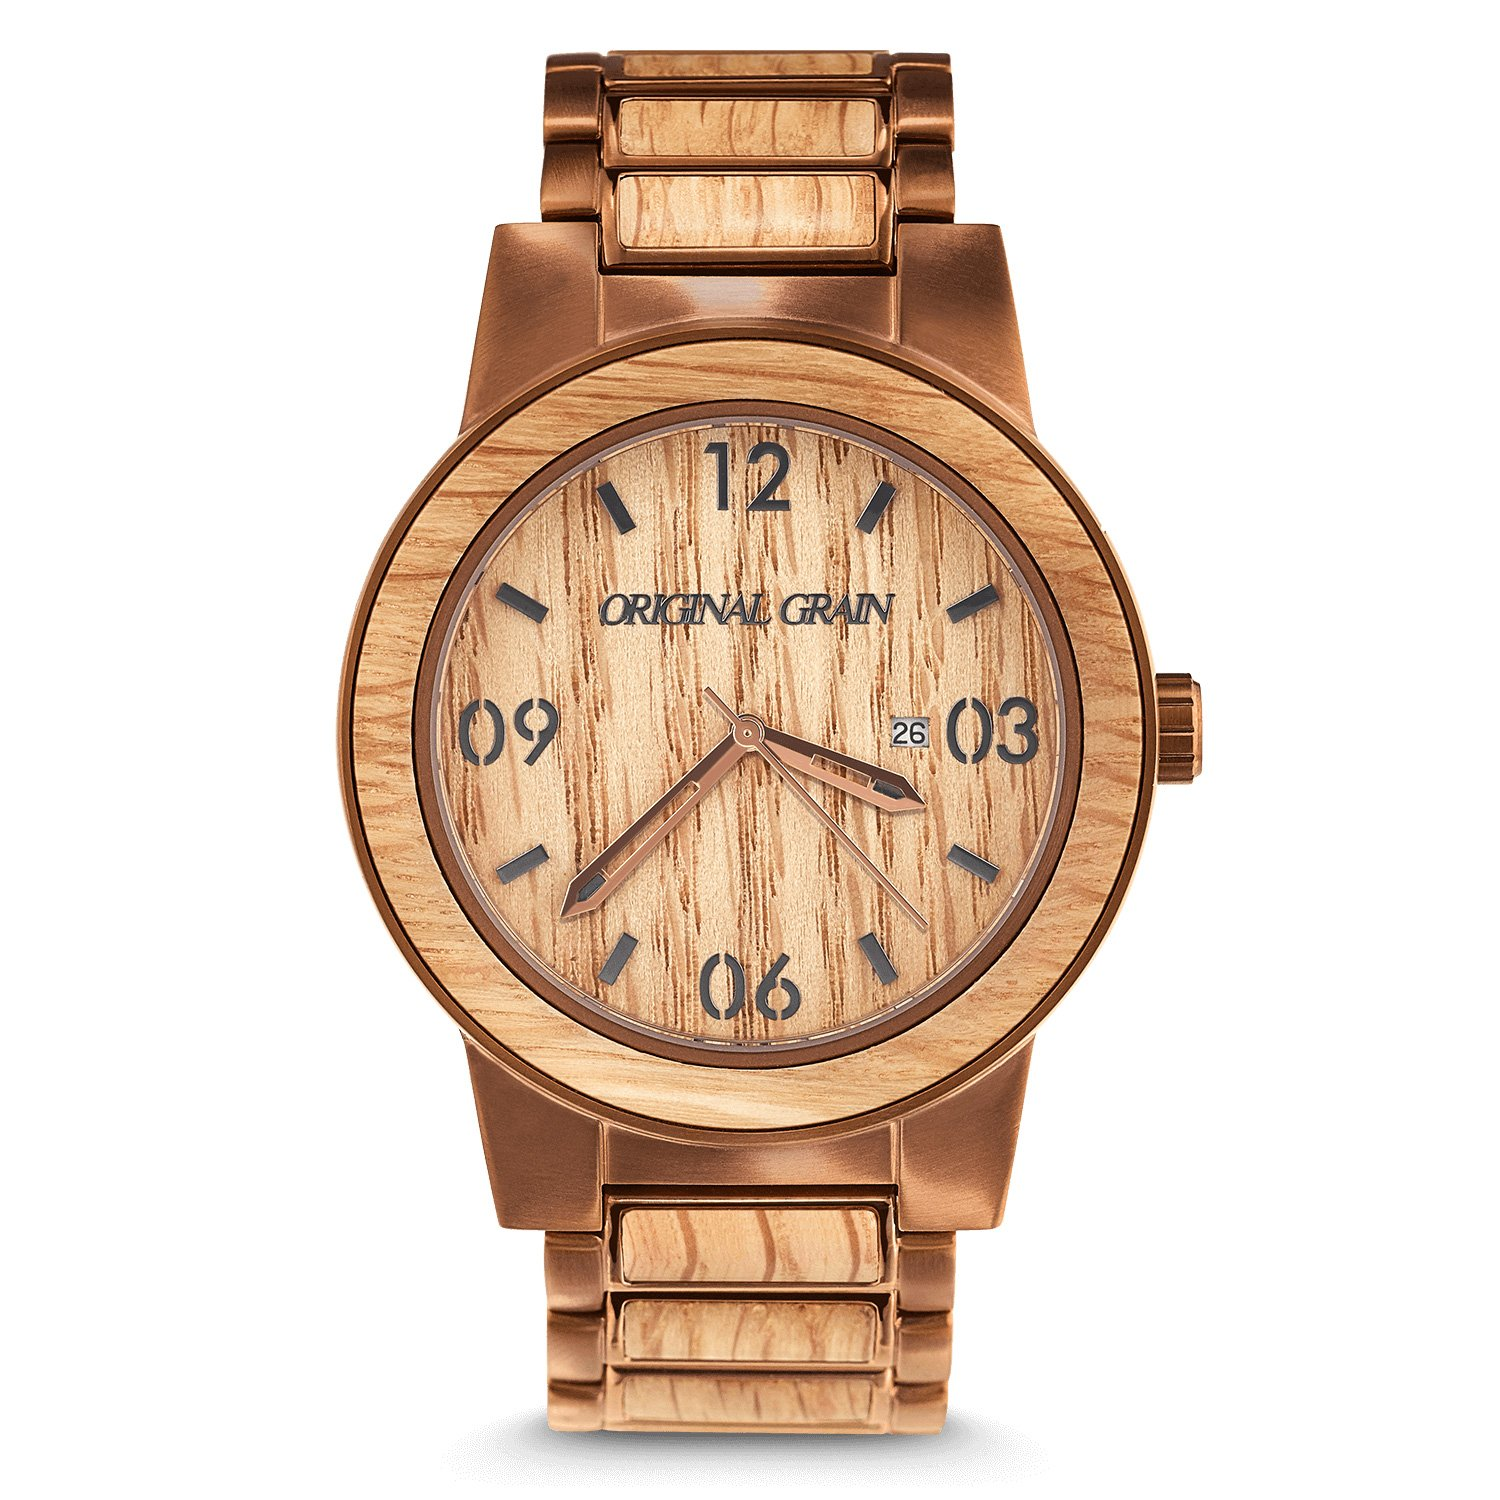 all wood you abigail a box logo to pride the watch with this on embossed kemples have has pieces true and that it cushion every watches come in jord can from keep detail